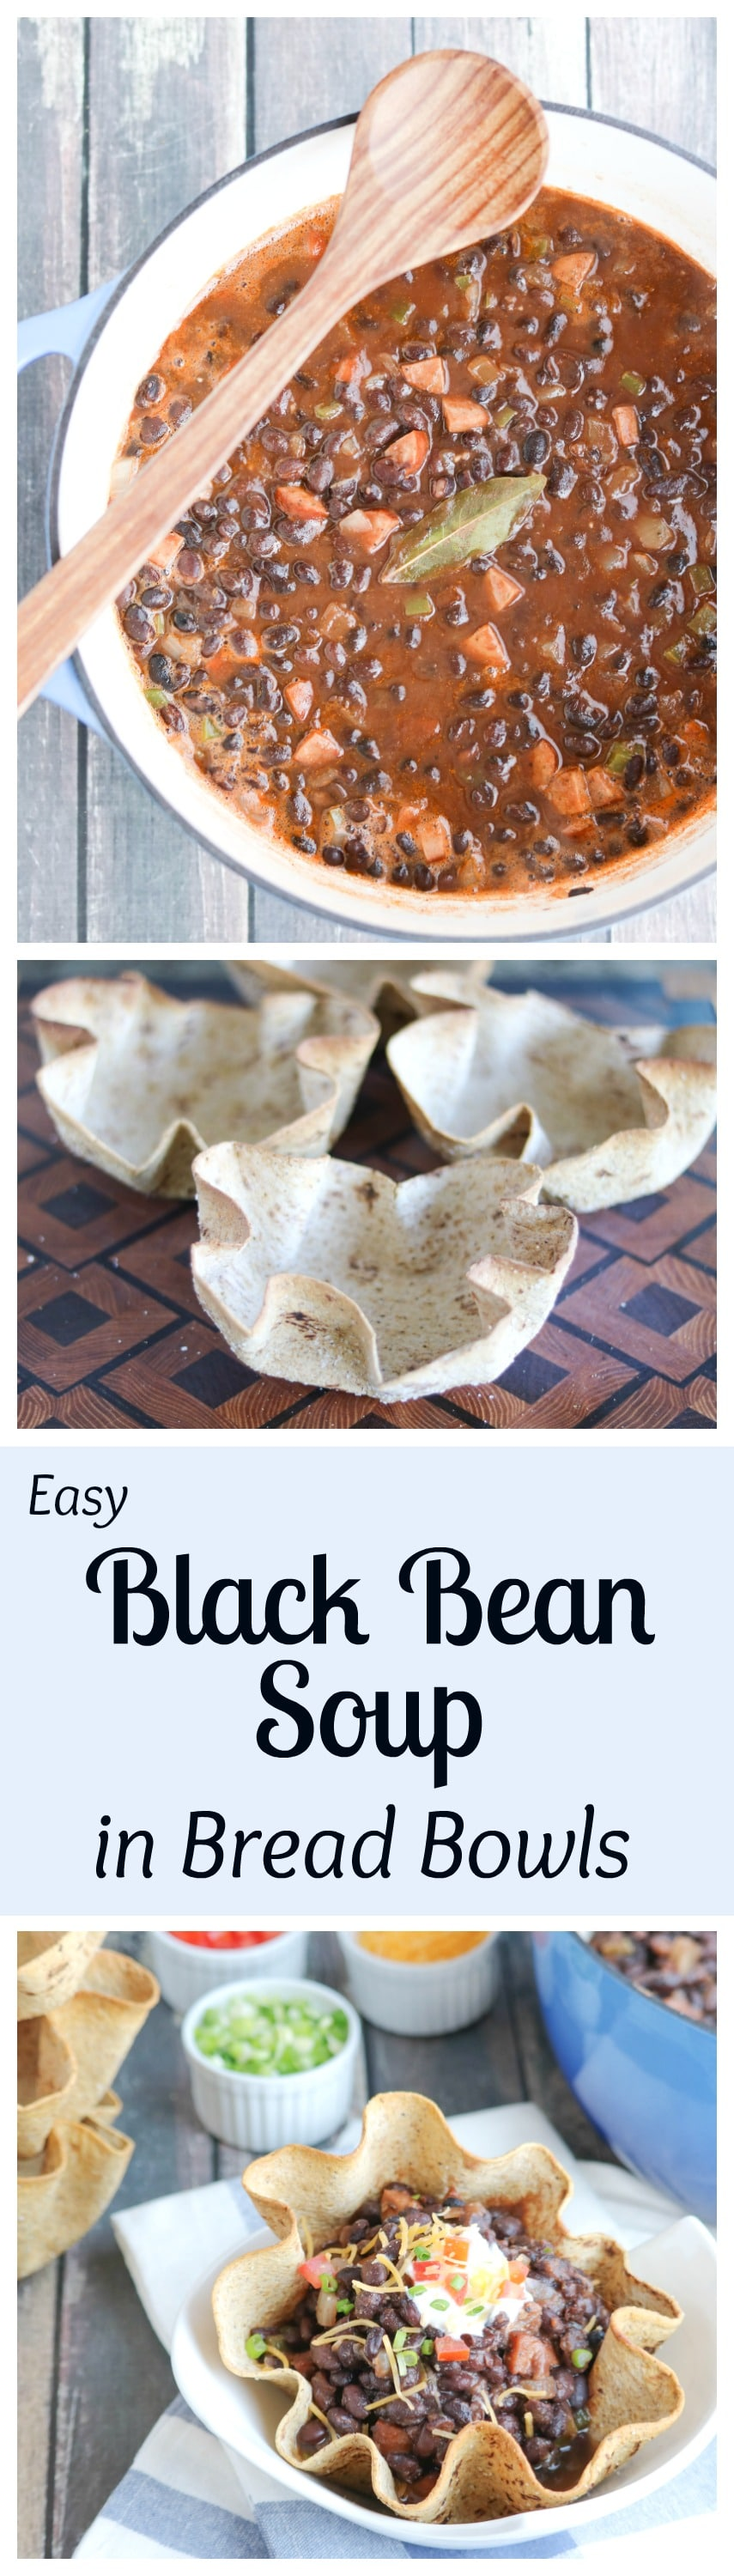 This Easy Black Bean Soup is rich, hearty and filling - and cooks in just 20 minutes! And those crispy-crunchy Cumin-Dusted Bread Bowls? You'll have 'em in the oven in 3 minutes, flat ... and you can even make them days in advance! AD | www.TwoHealthyKitchens.com